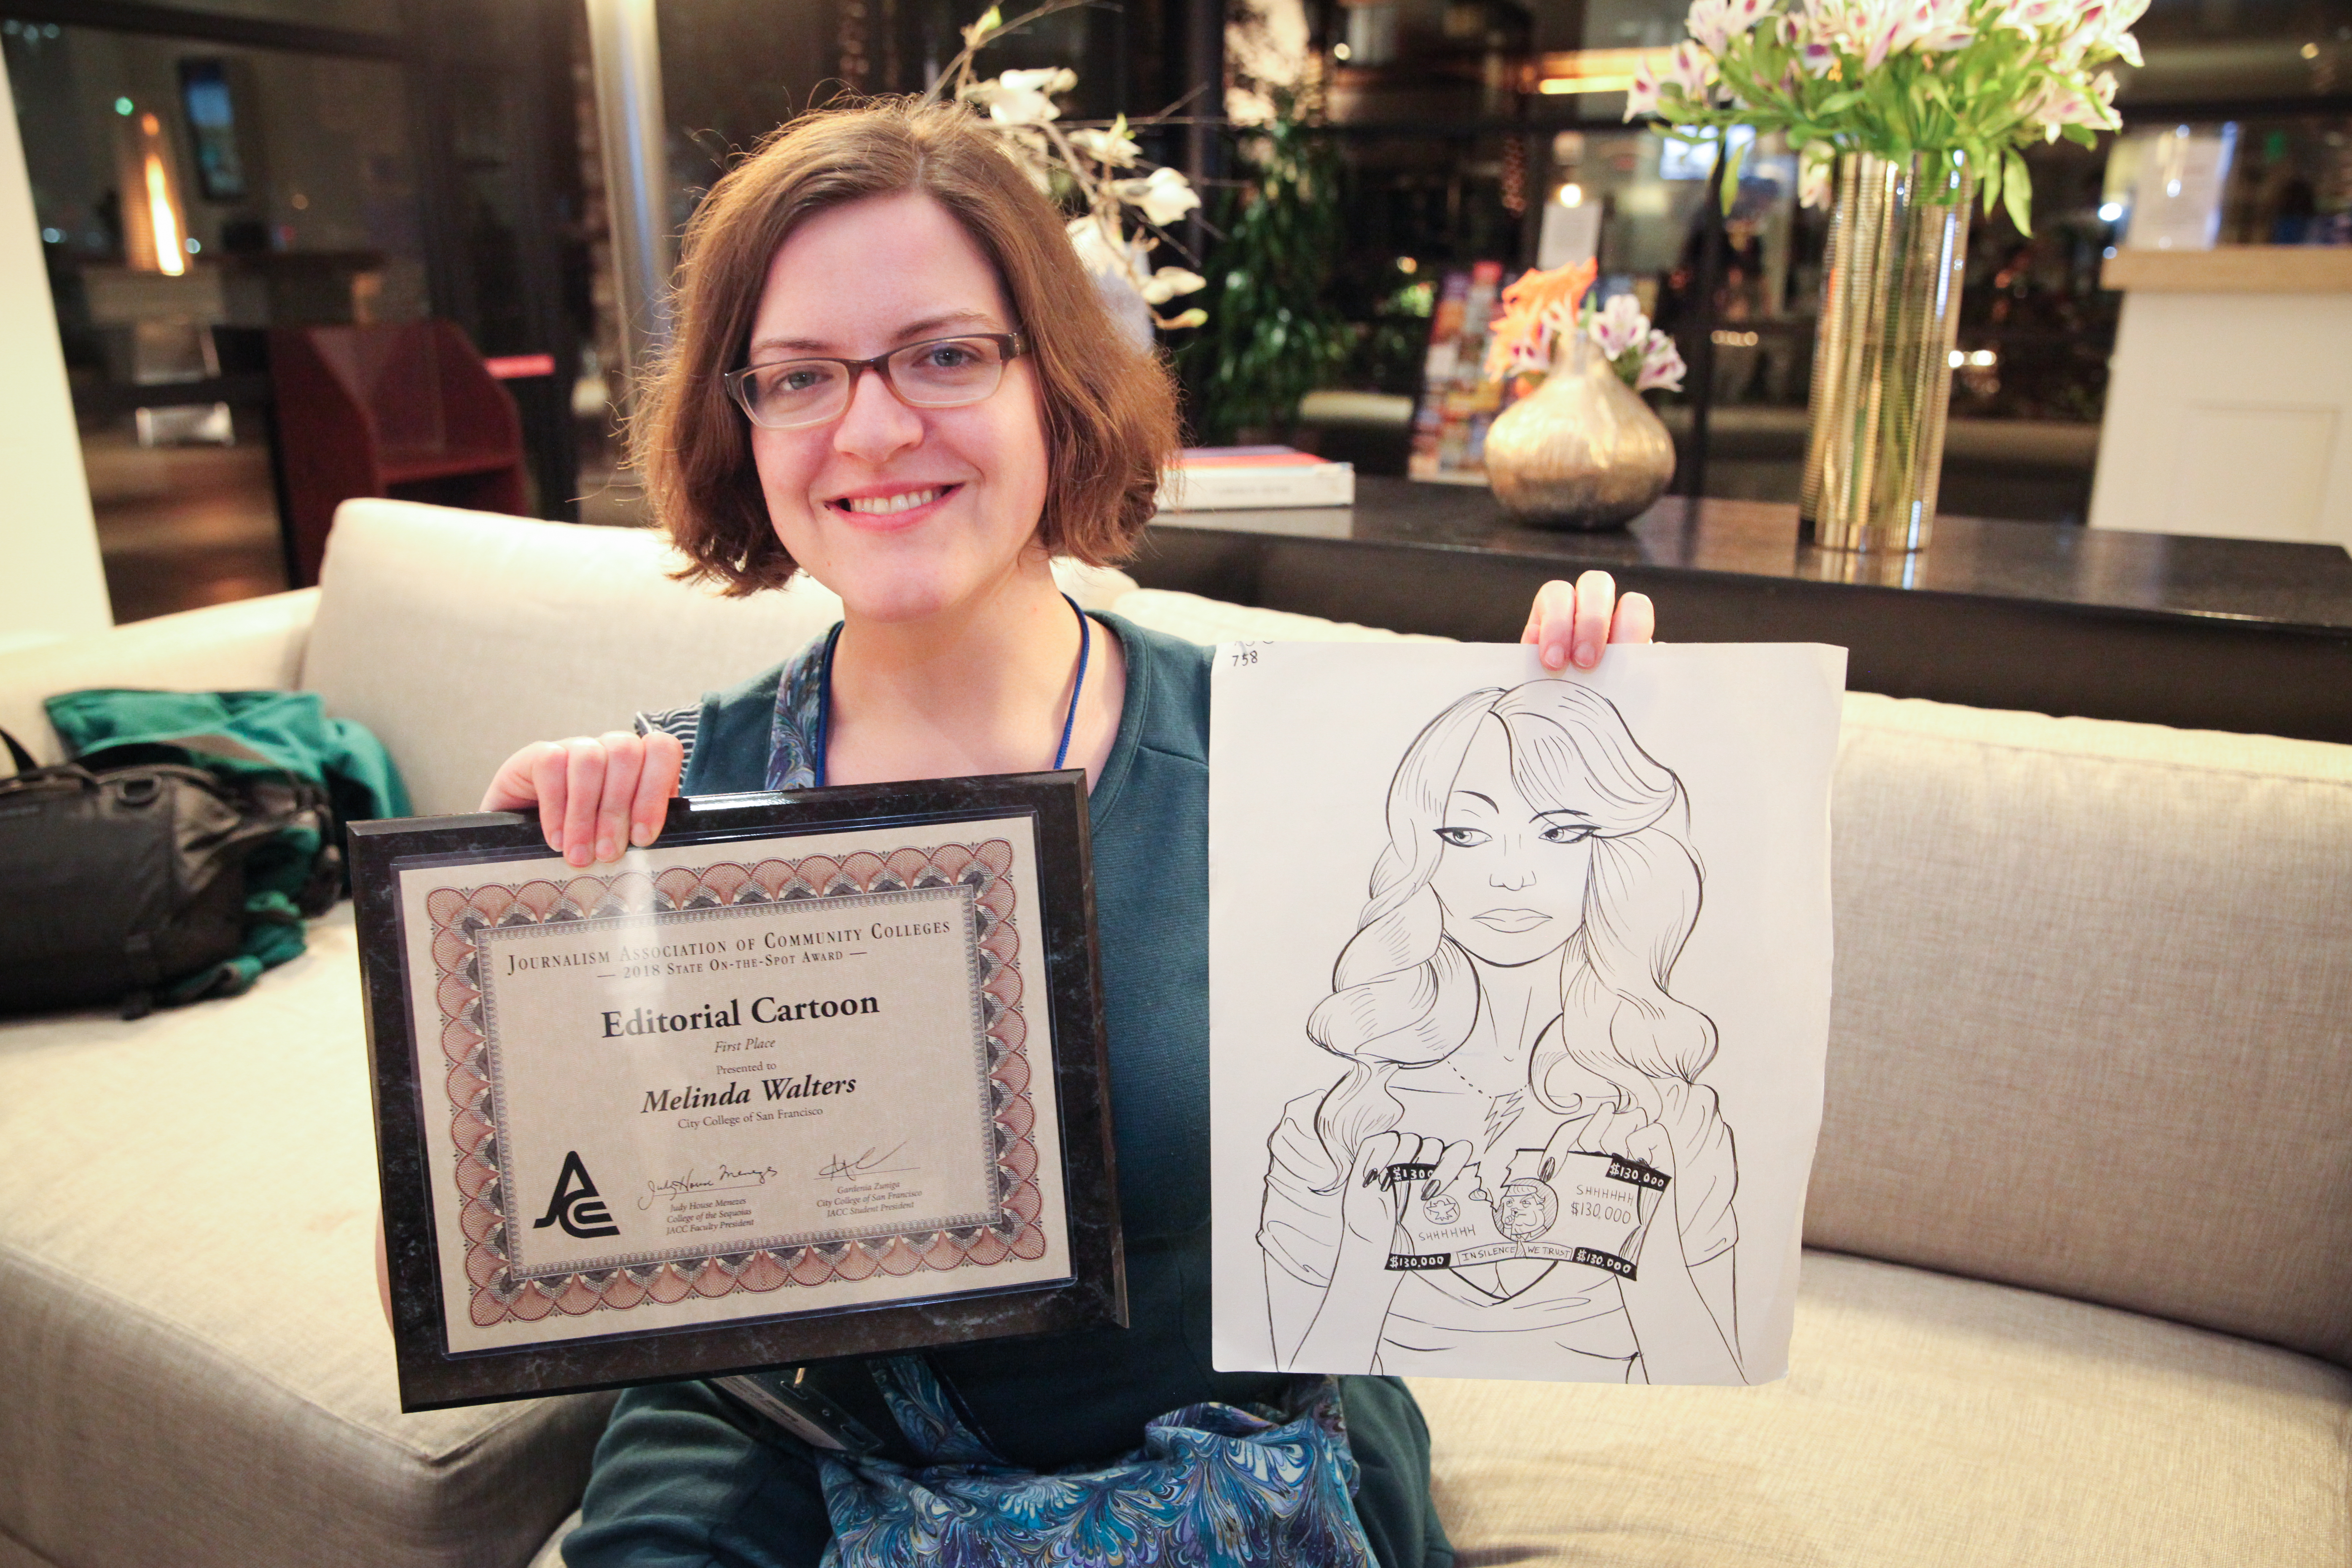 City College of San Francisco student Melinda Walters holds the First Place award she received from On-the-Spot Editorial Cartoon contest during the 2018 JACC State Convention held at Burbank Marriott Convention Center on Saturday, March 24, 2018 in Burbank, Calif. Photo by Ekevara Kitpowsong/The Guardsman.